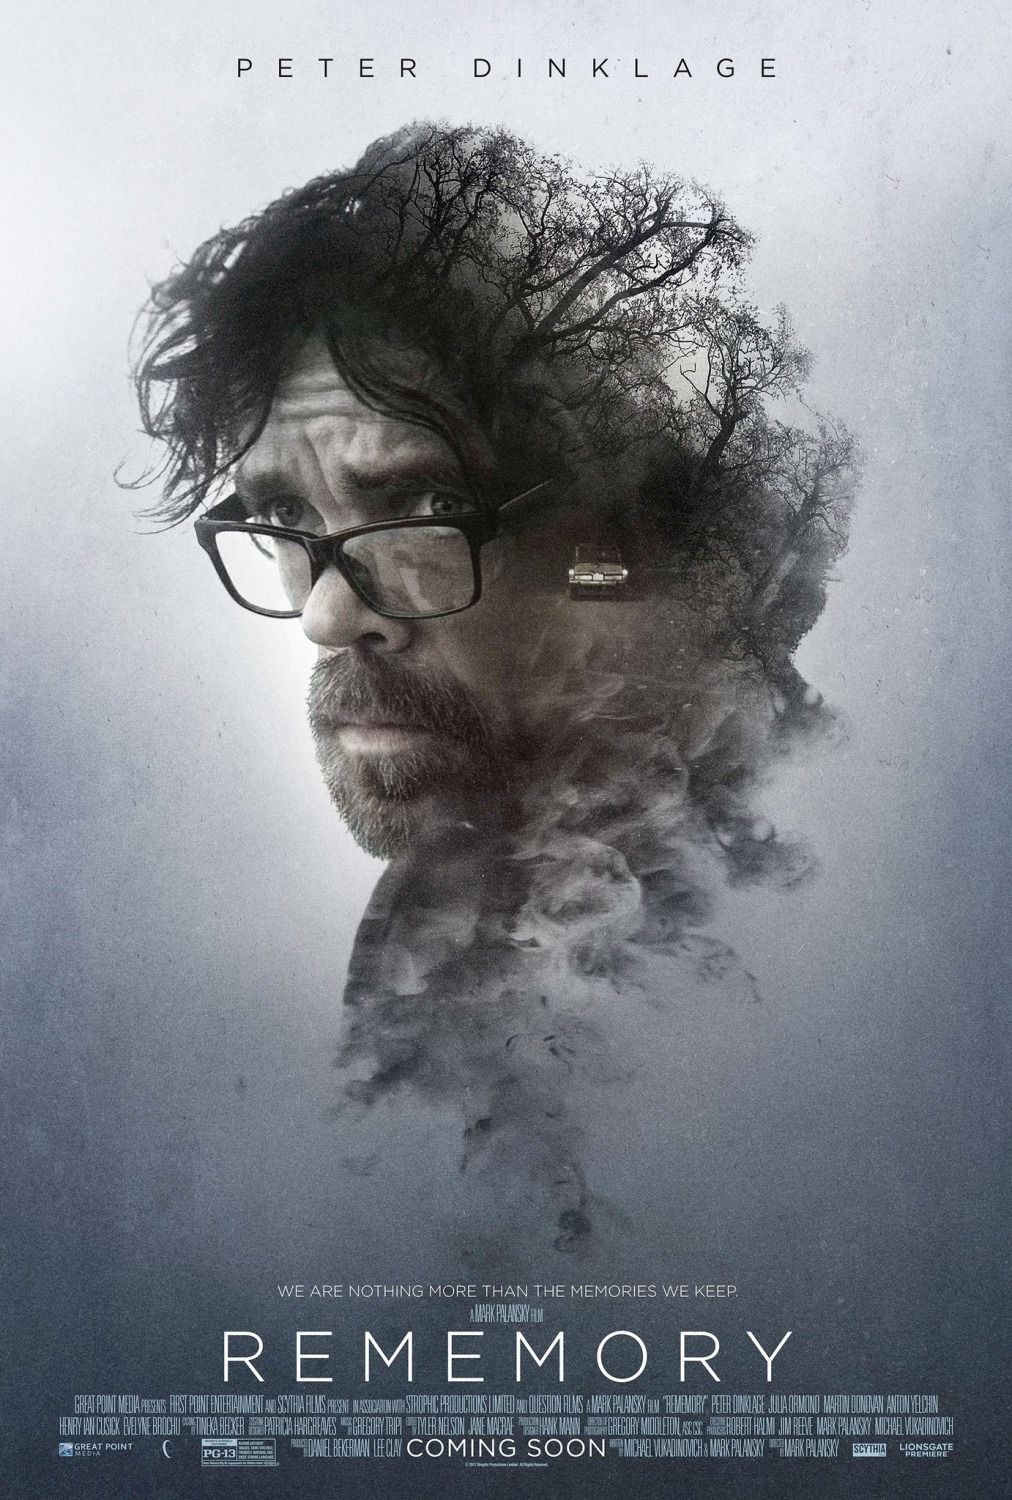 Rememory - Peter Dinklage - film poster